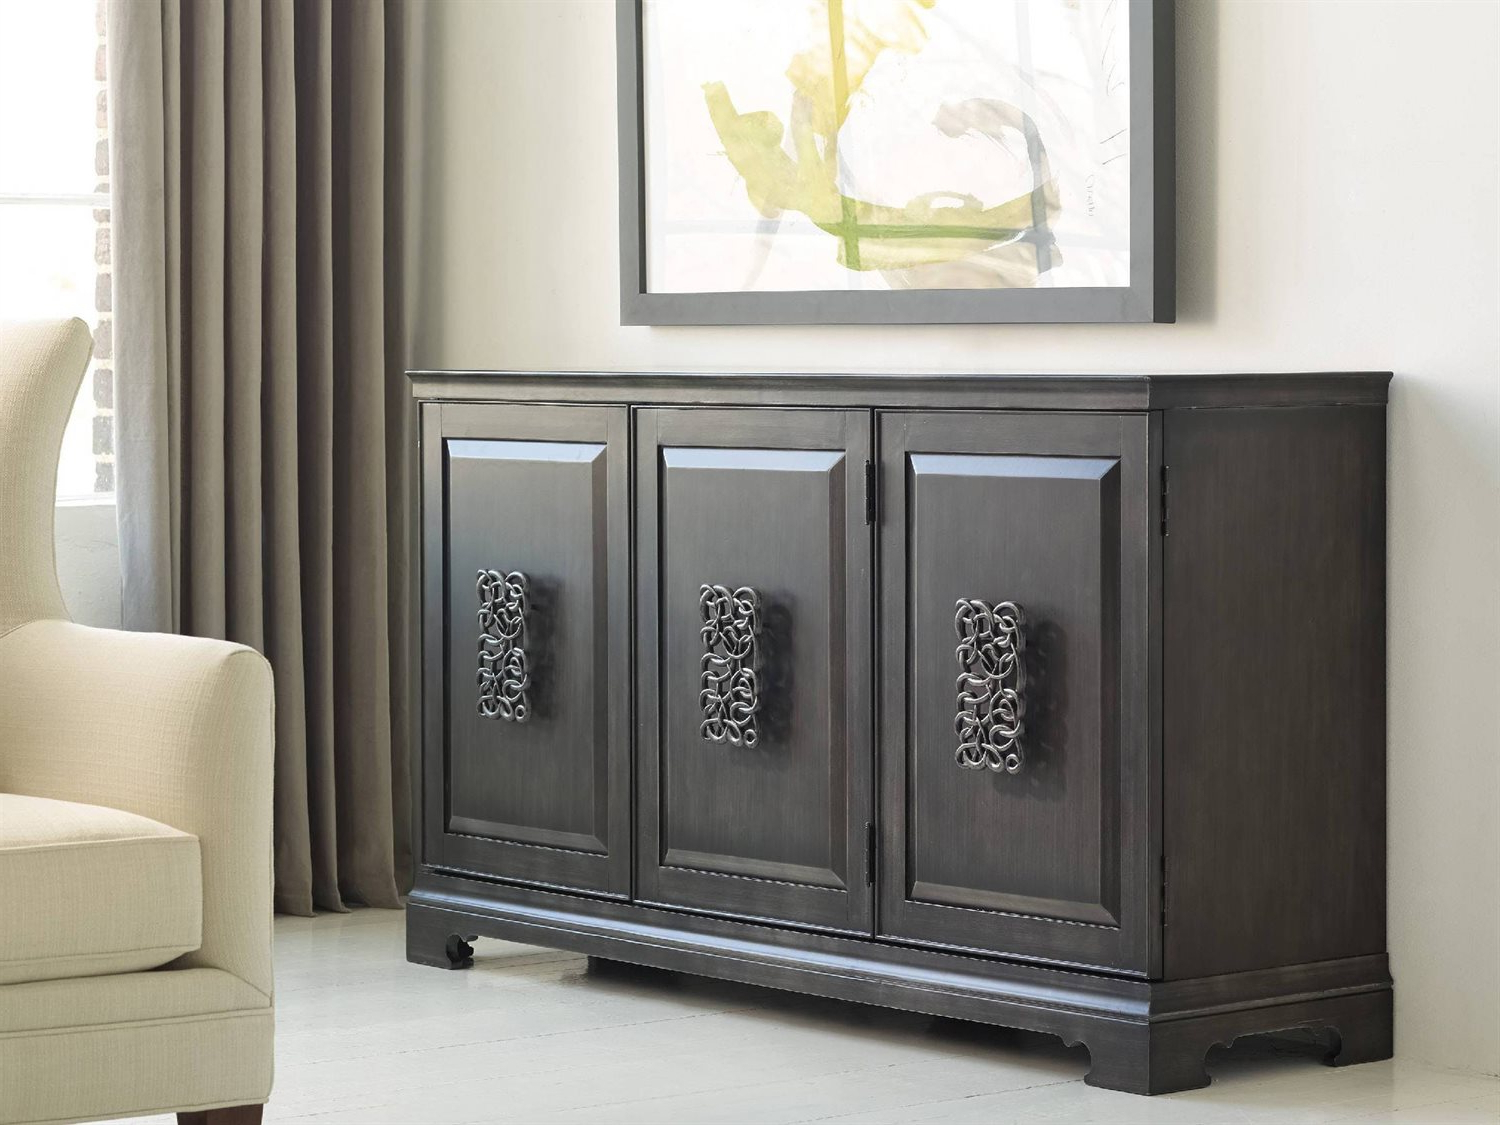 Melange Brockton Sideboards Regarding Most Popular Hooker Furniture Melange Charcoal Gray 64''l X 18''w Rectangular Brockton  Credenza Buffet (View 8 of 20)